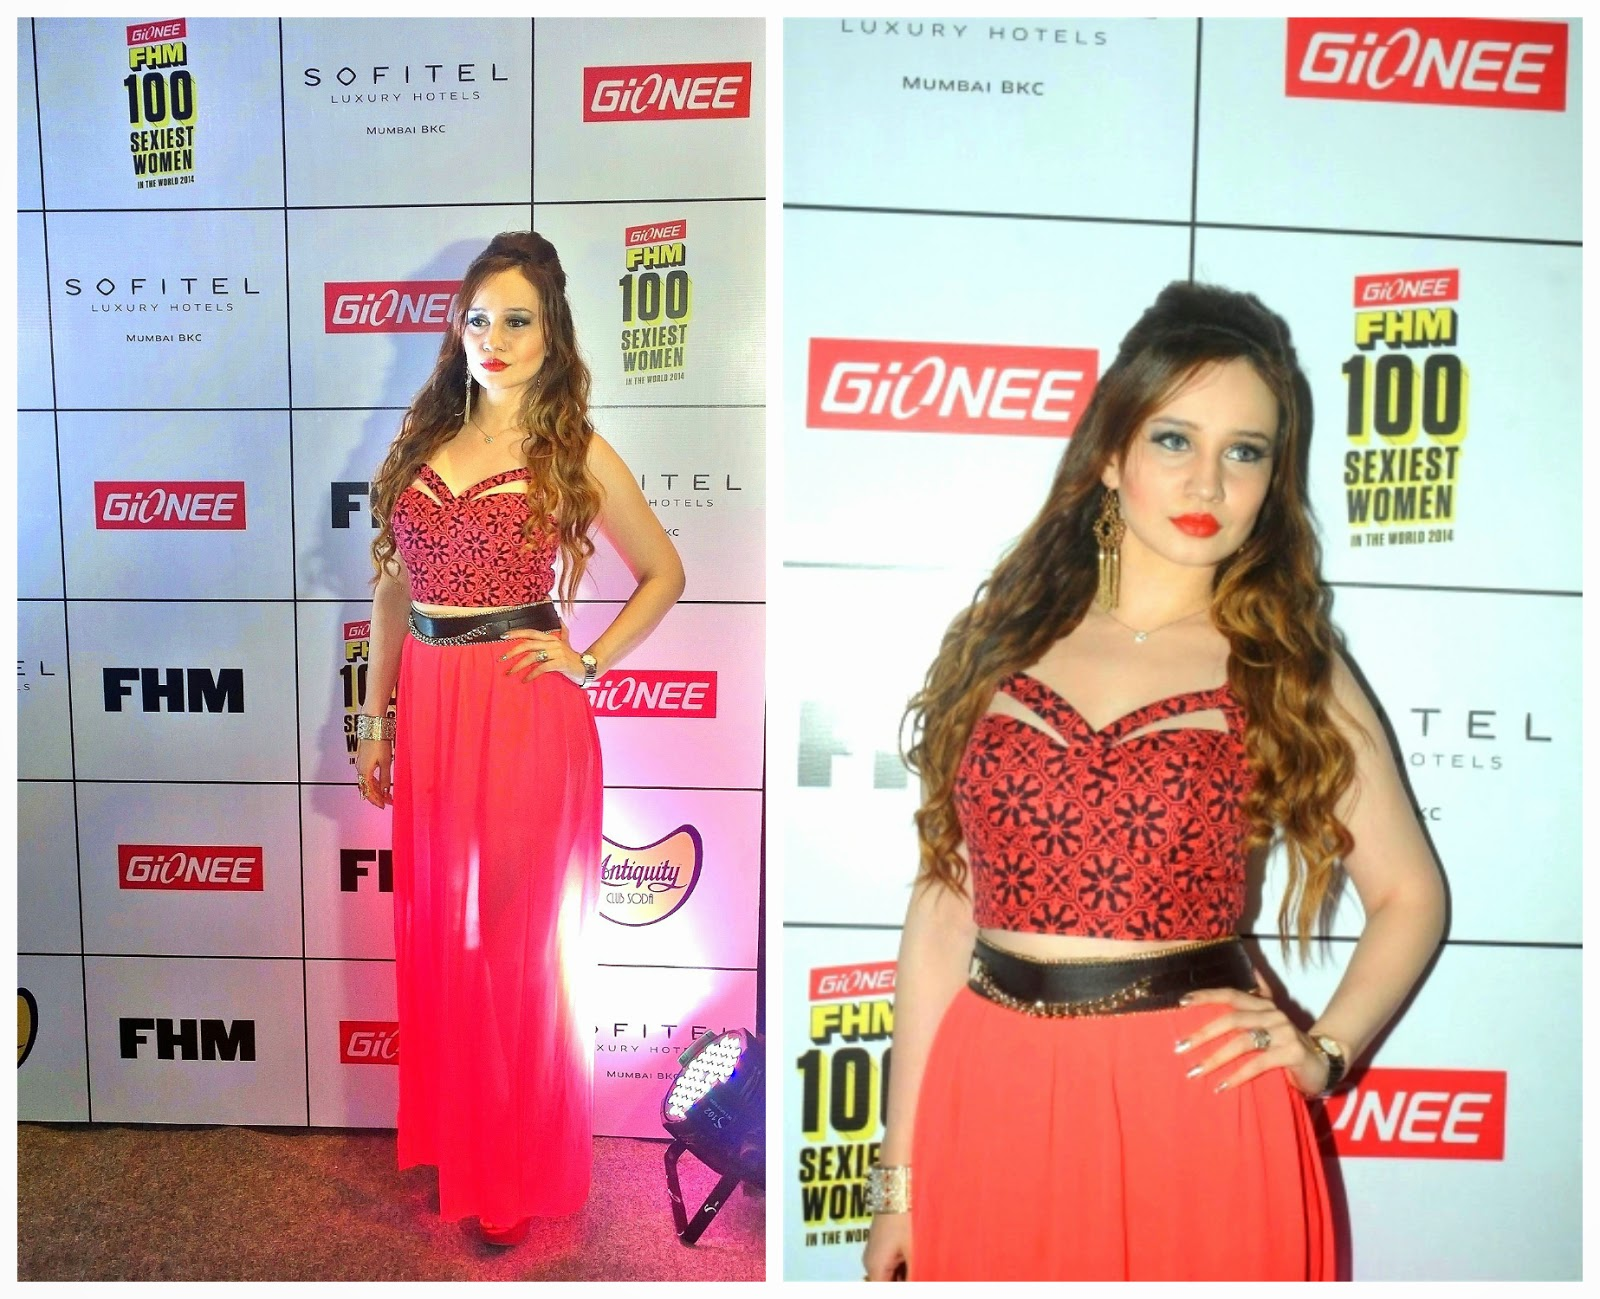 Stephanie Timmins at Gionee FHM Sexiest 100